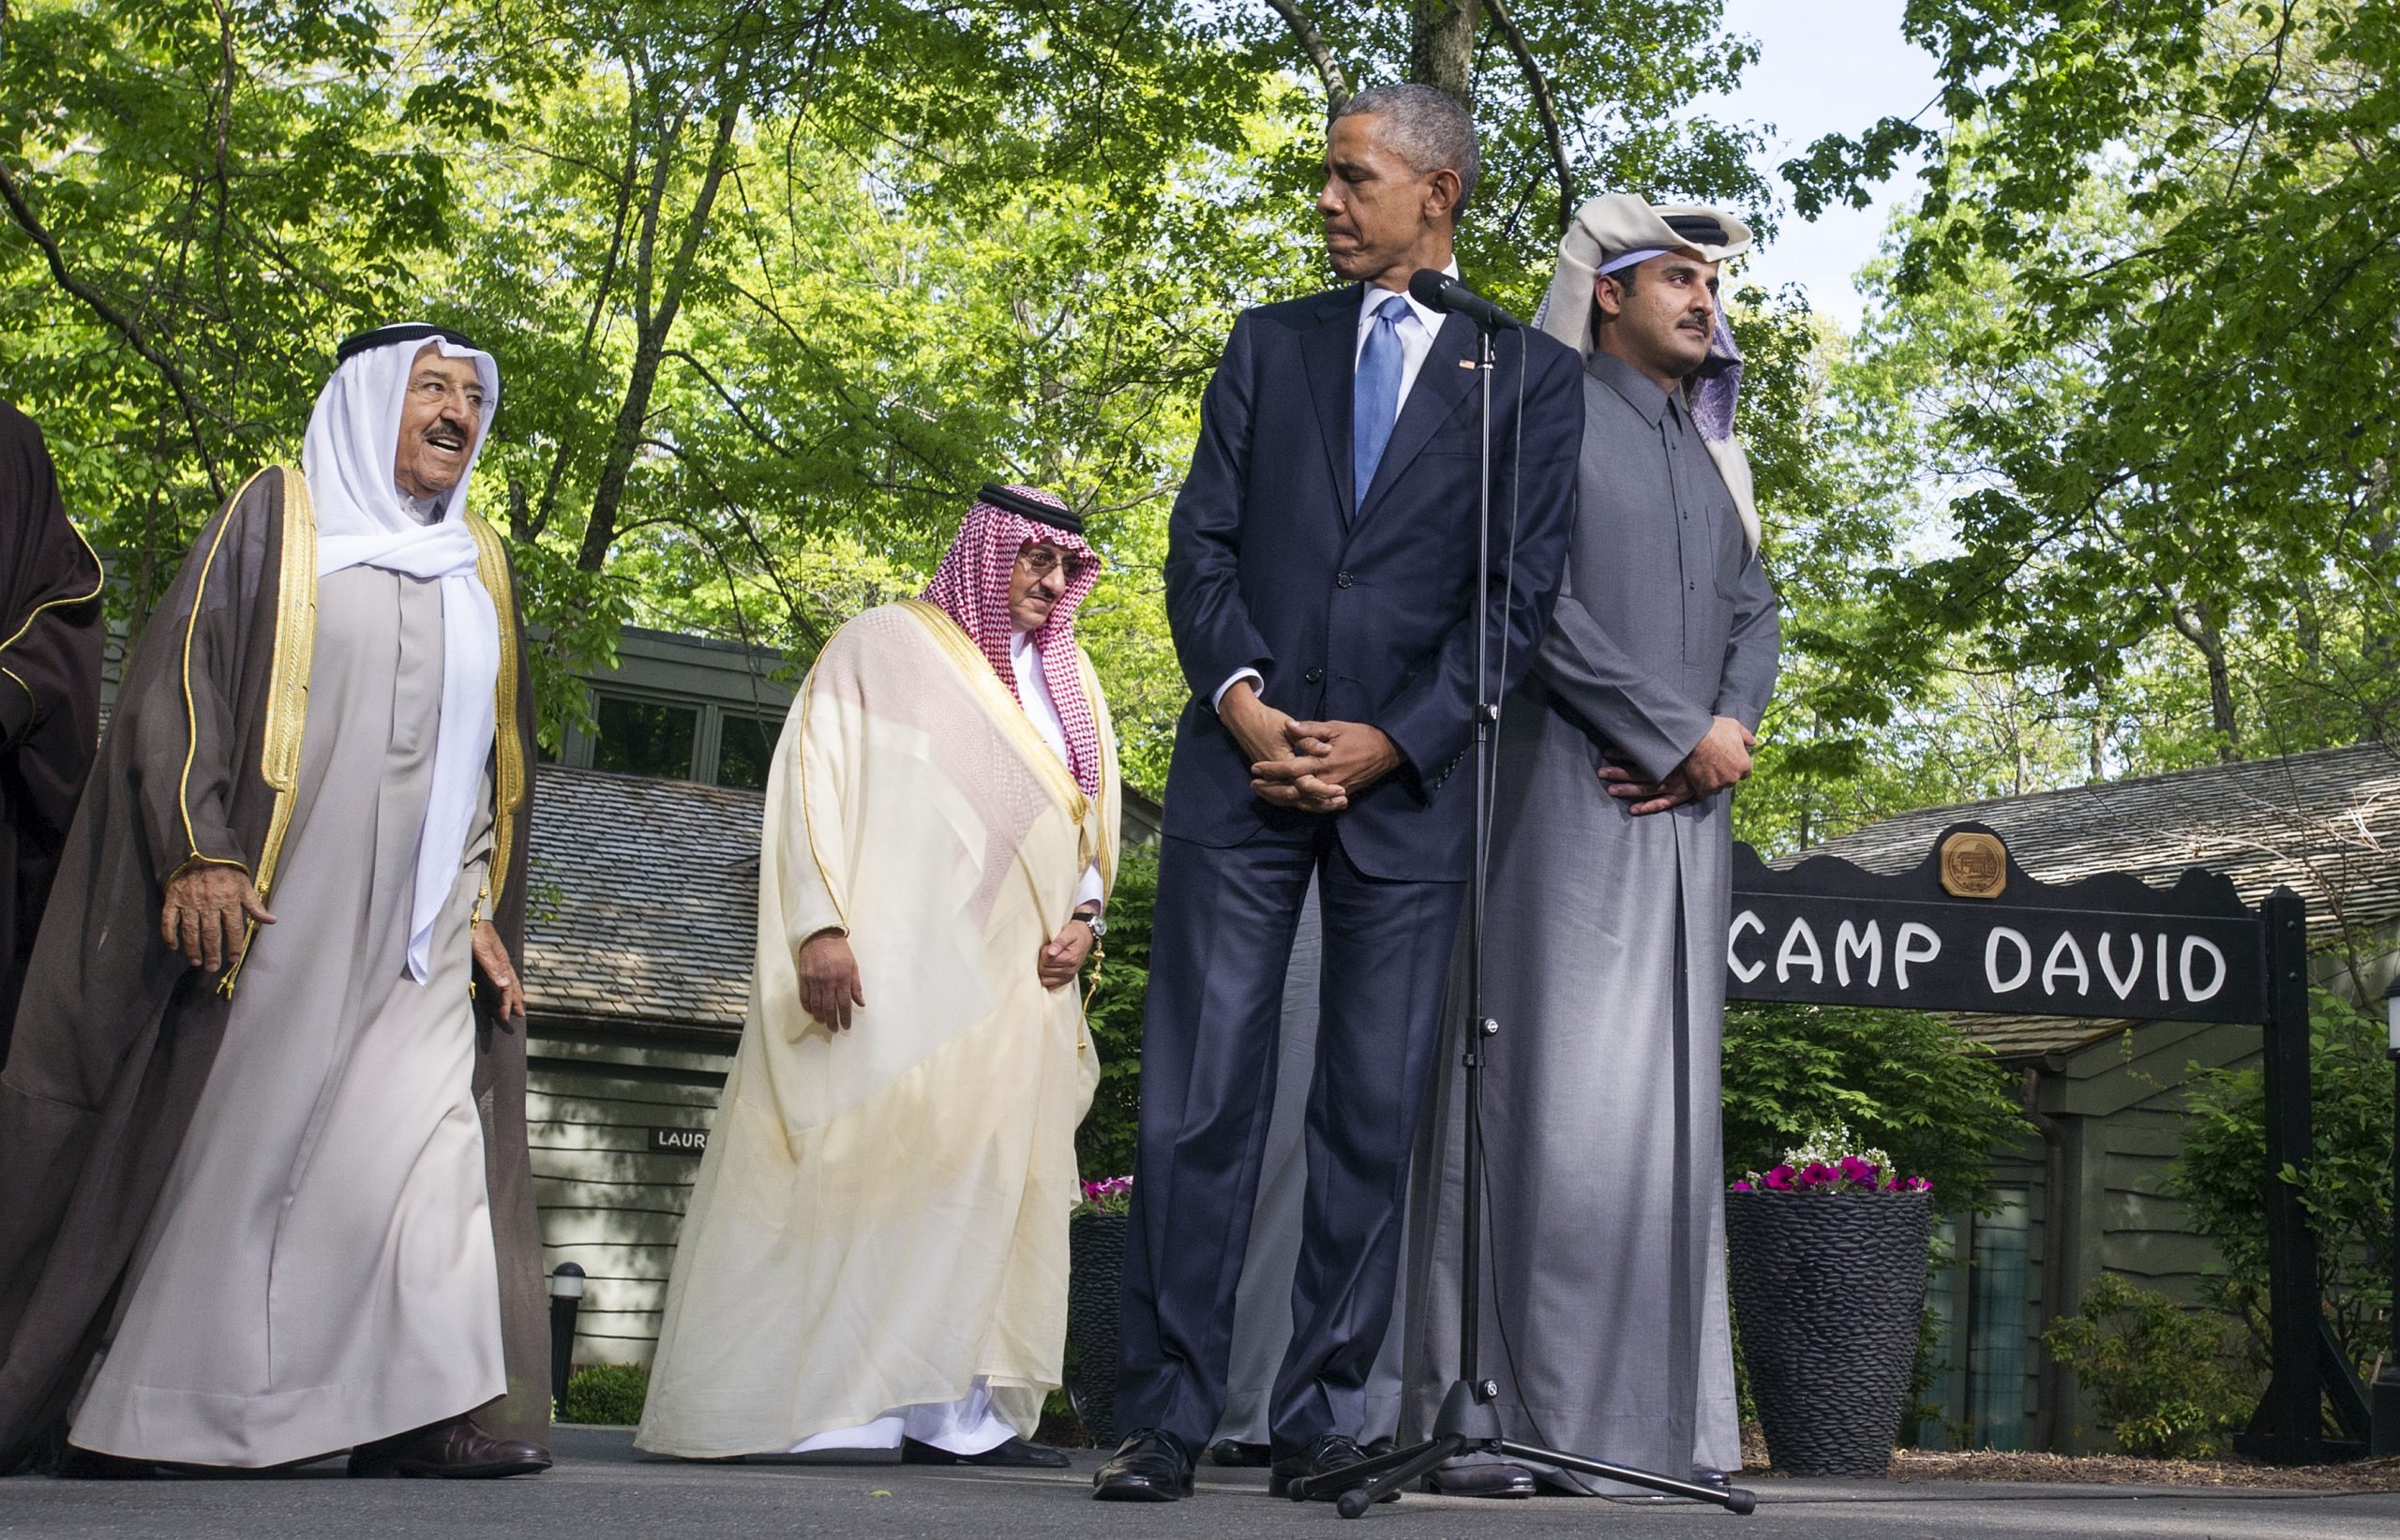 U.S. President Barack Obama waits to deliver remarks following the Gulf Cooperation Council-U.S. summit on May 14, 2015 at Camp David, Maryland.